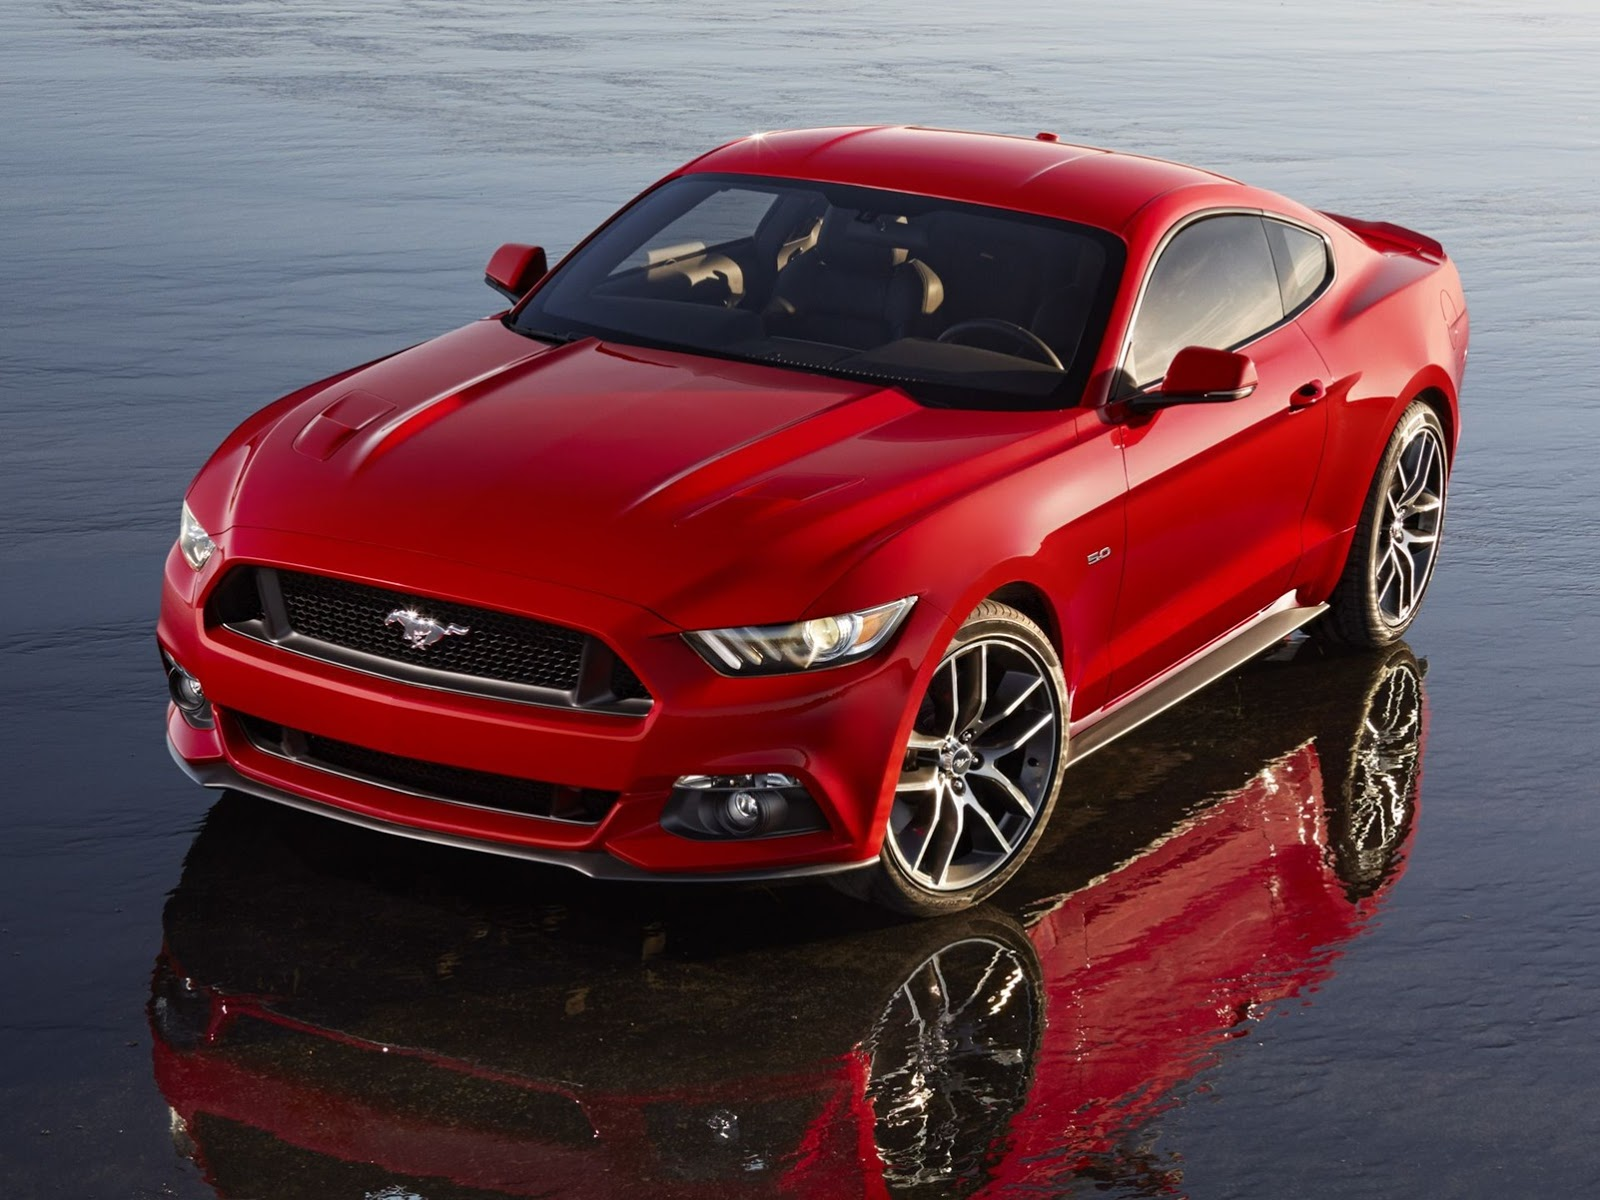 2014 - [Ford] Mustang VII - Page 6 2015-Ford-Mustang-Photos-46%25255B2%25255D